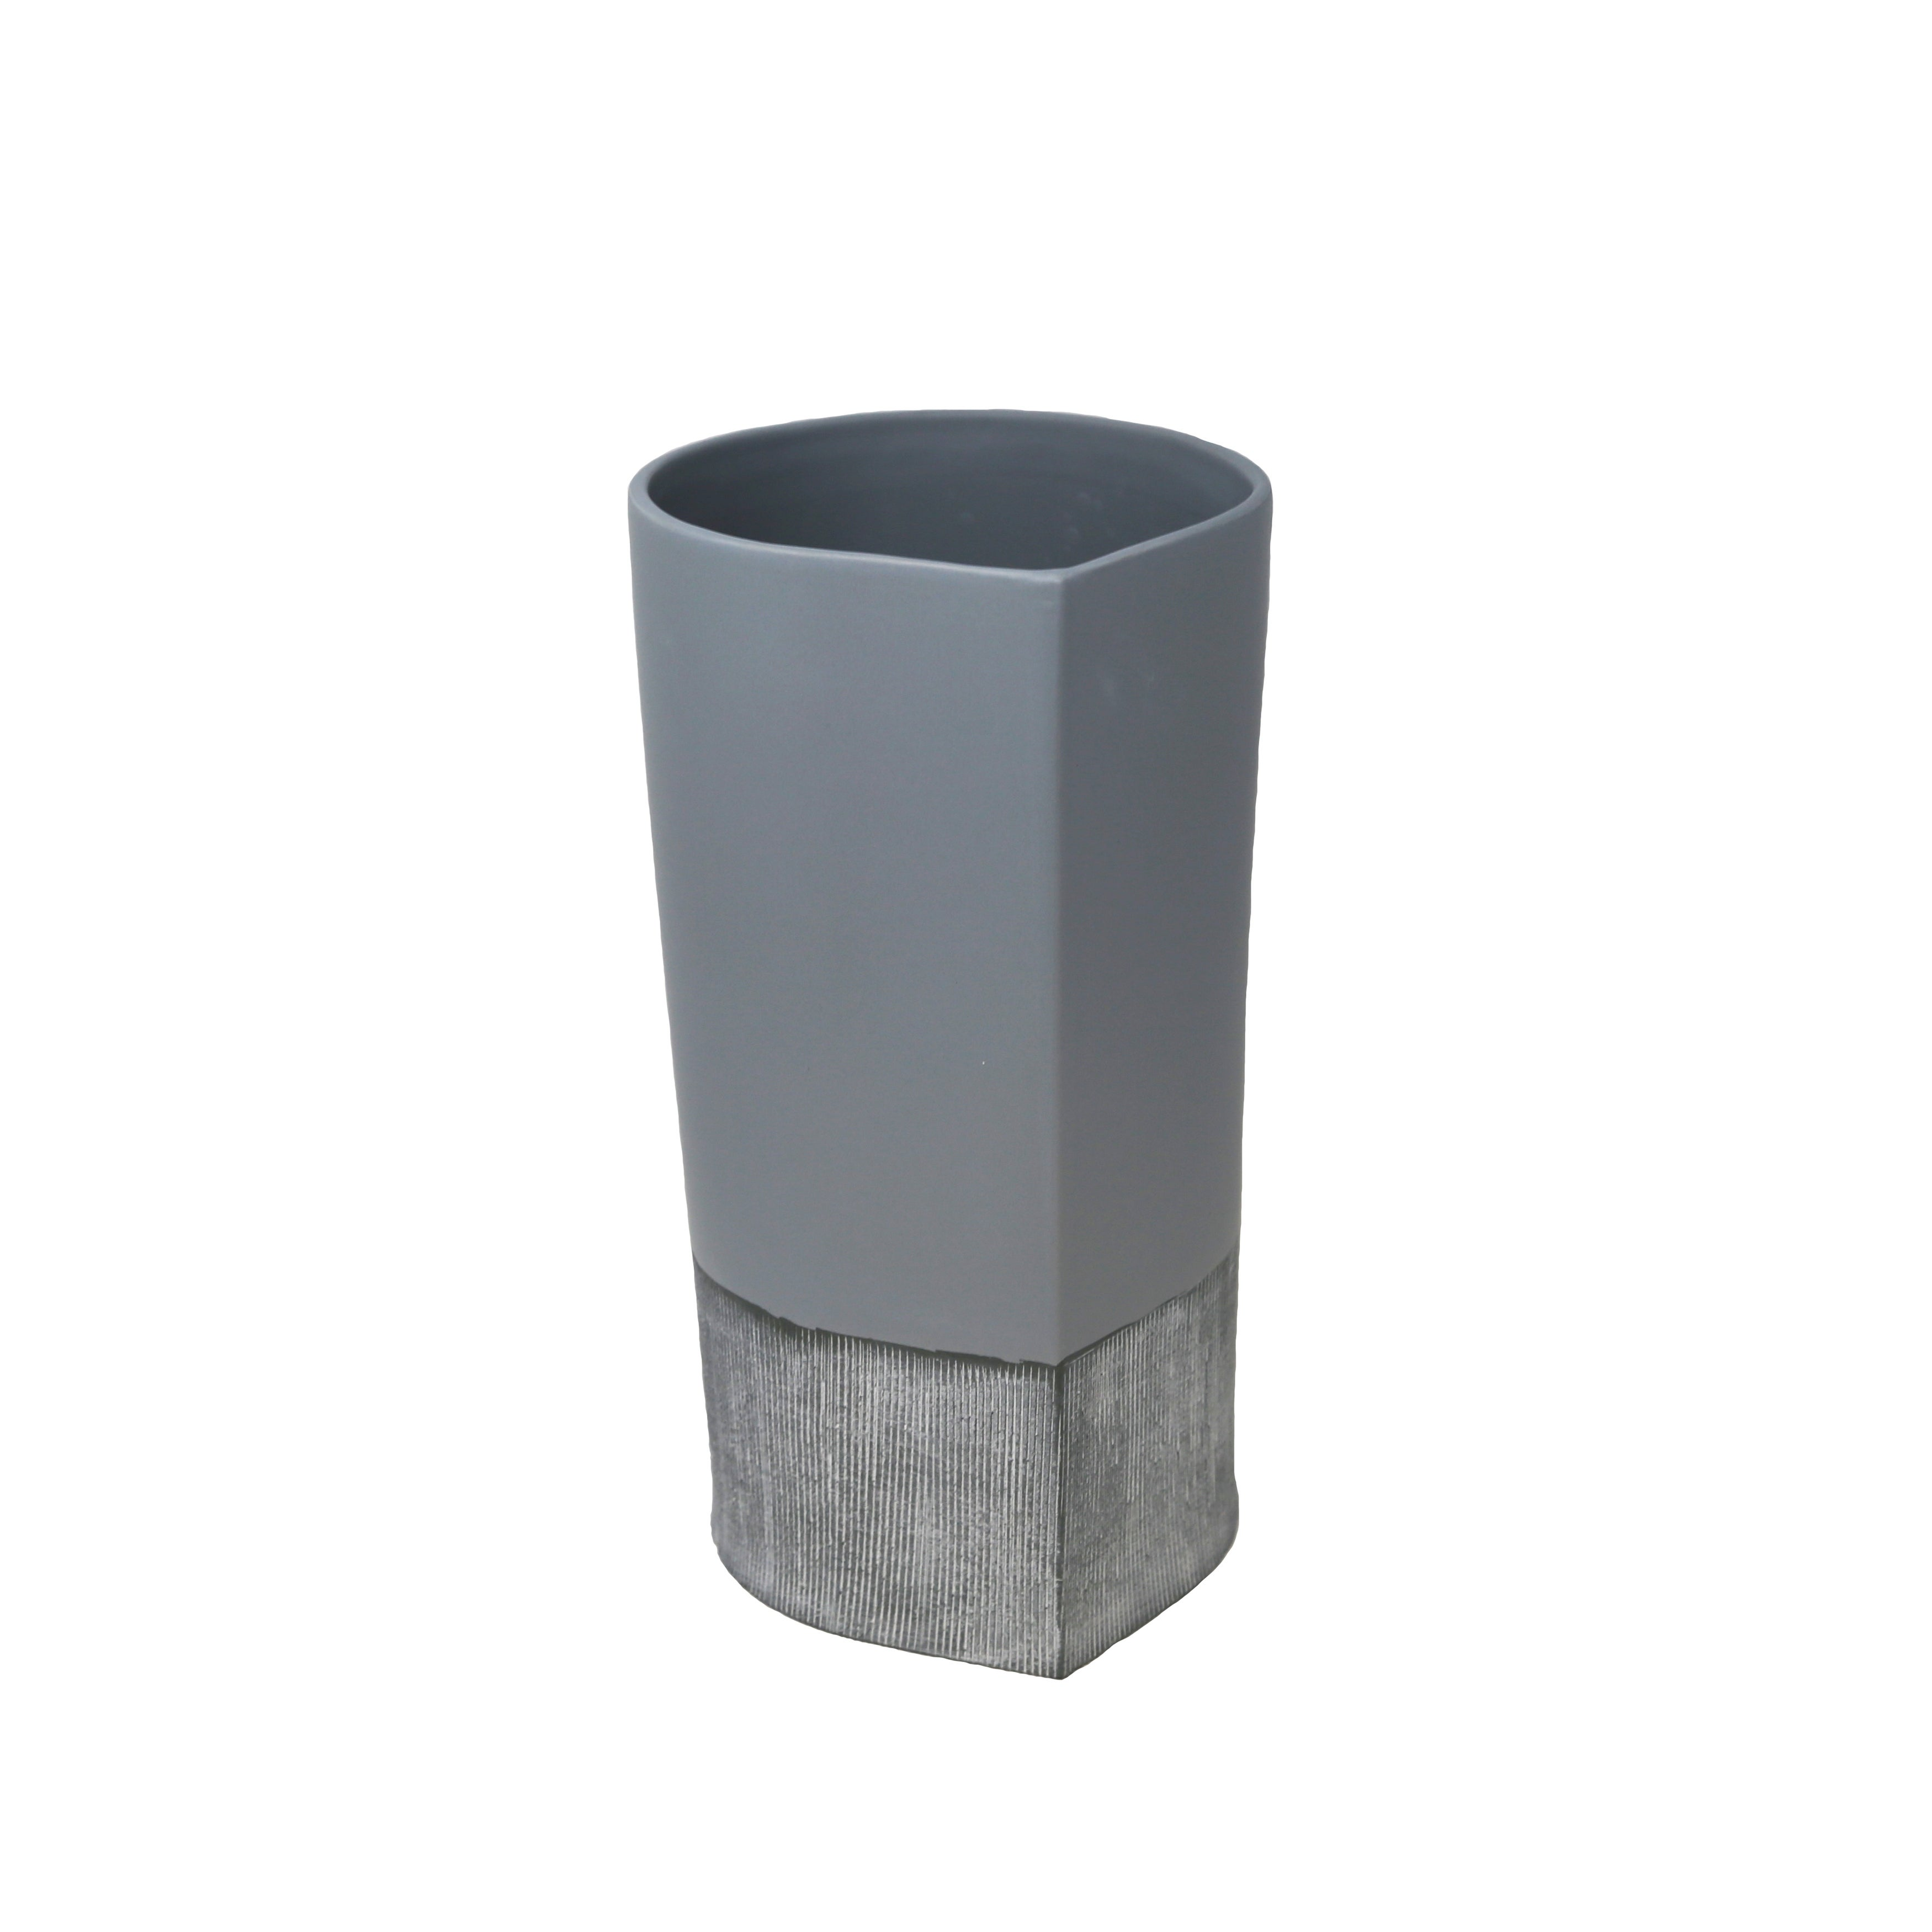 Ceramic  Vase With Wide Open Mouth And Small Base, Medium, Matte Gray